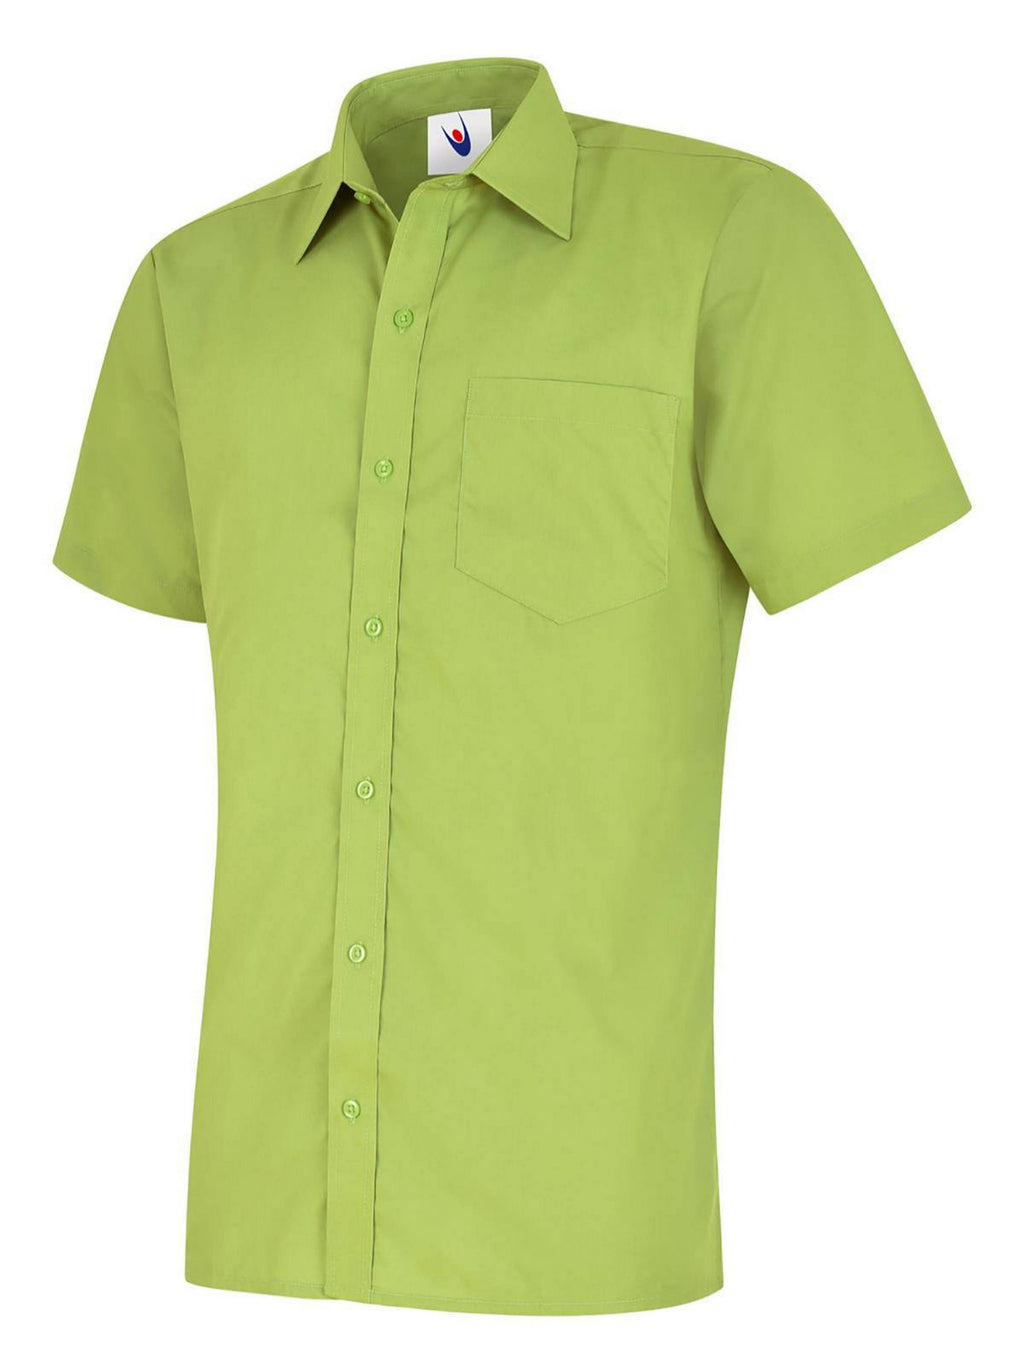 S710 Men's Short Sleeve Poplin Shirt (UC710)